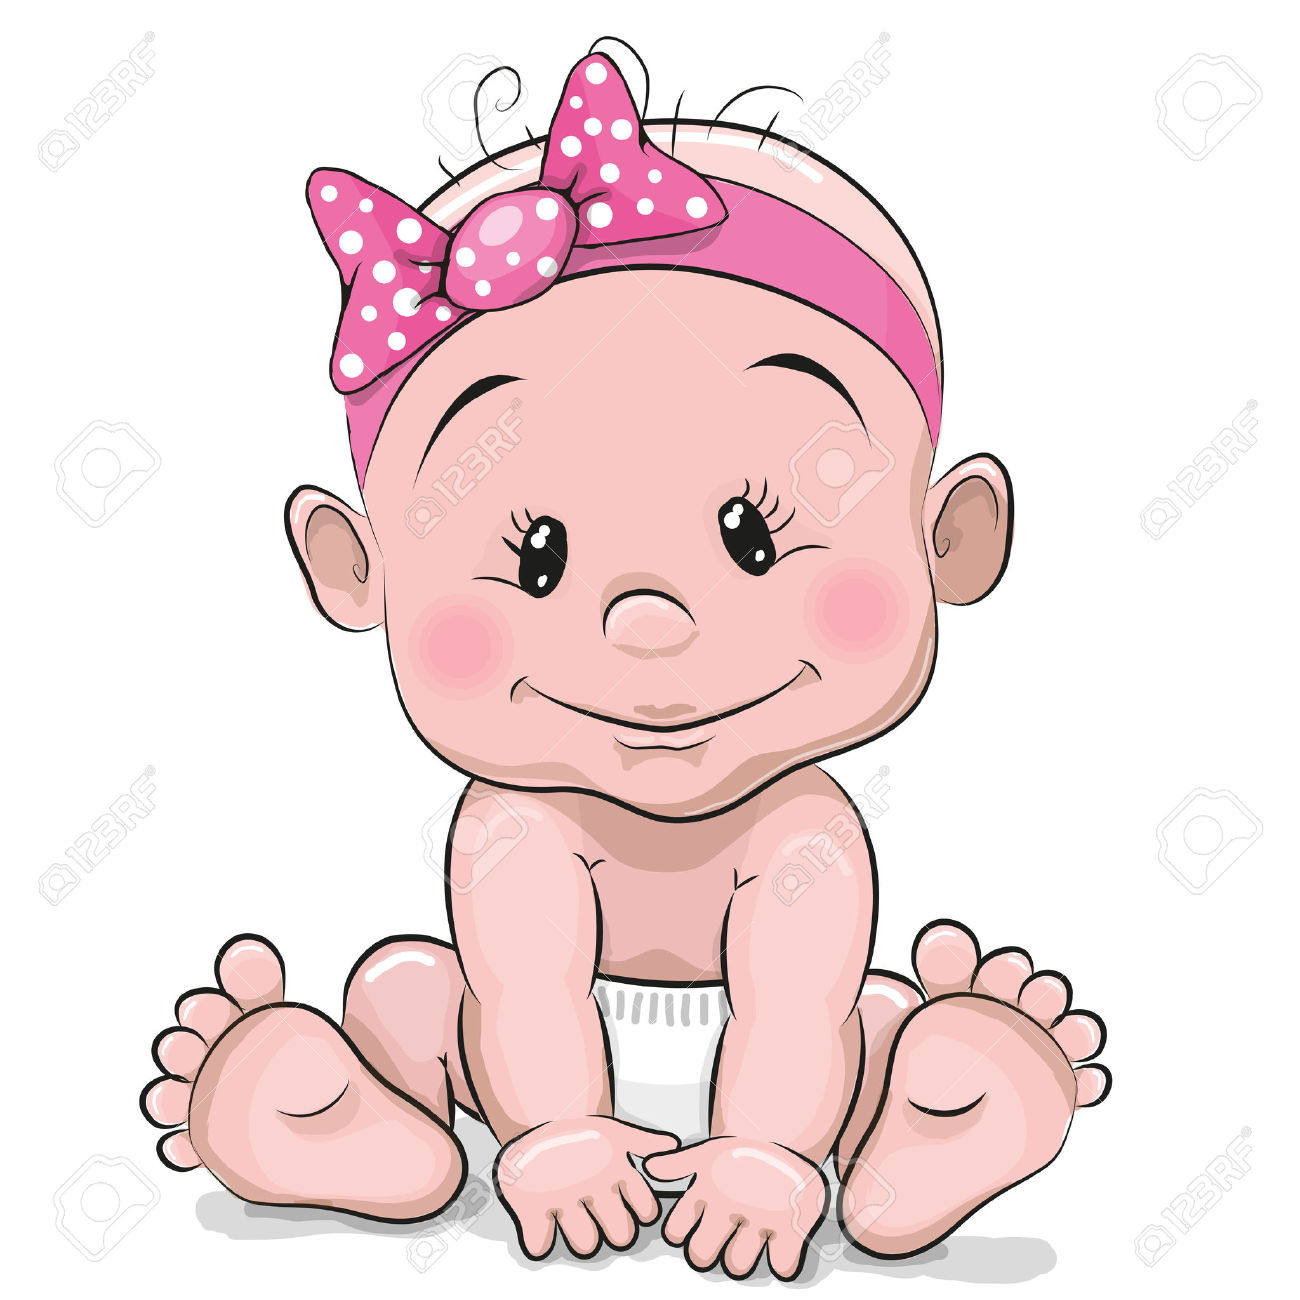 hight resolution of 201 167 human baby stock illustrations cliparts and royalty free